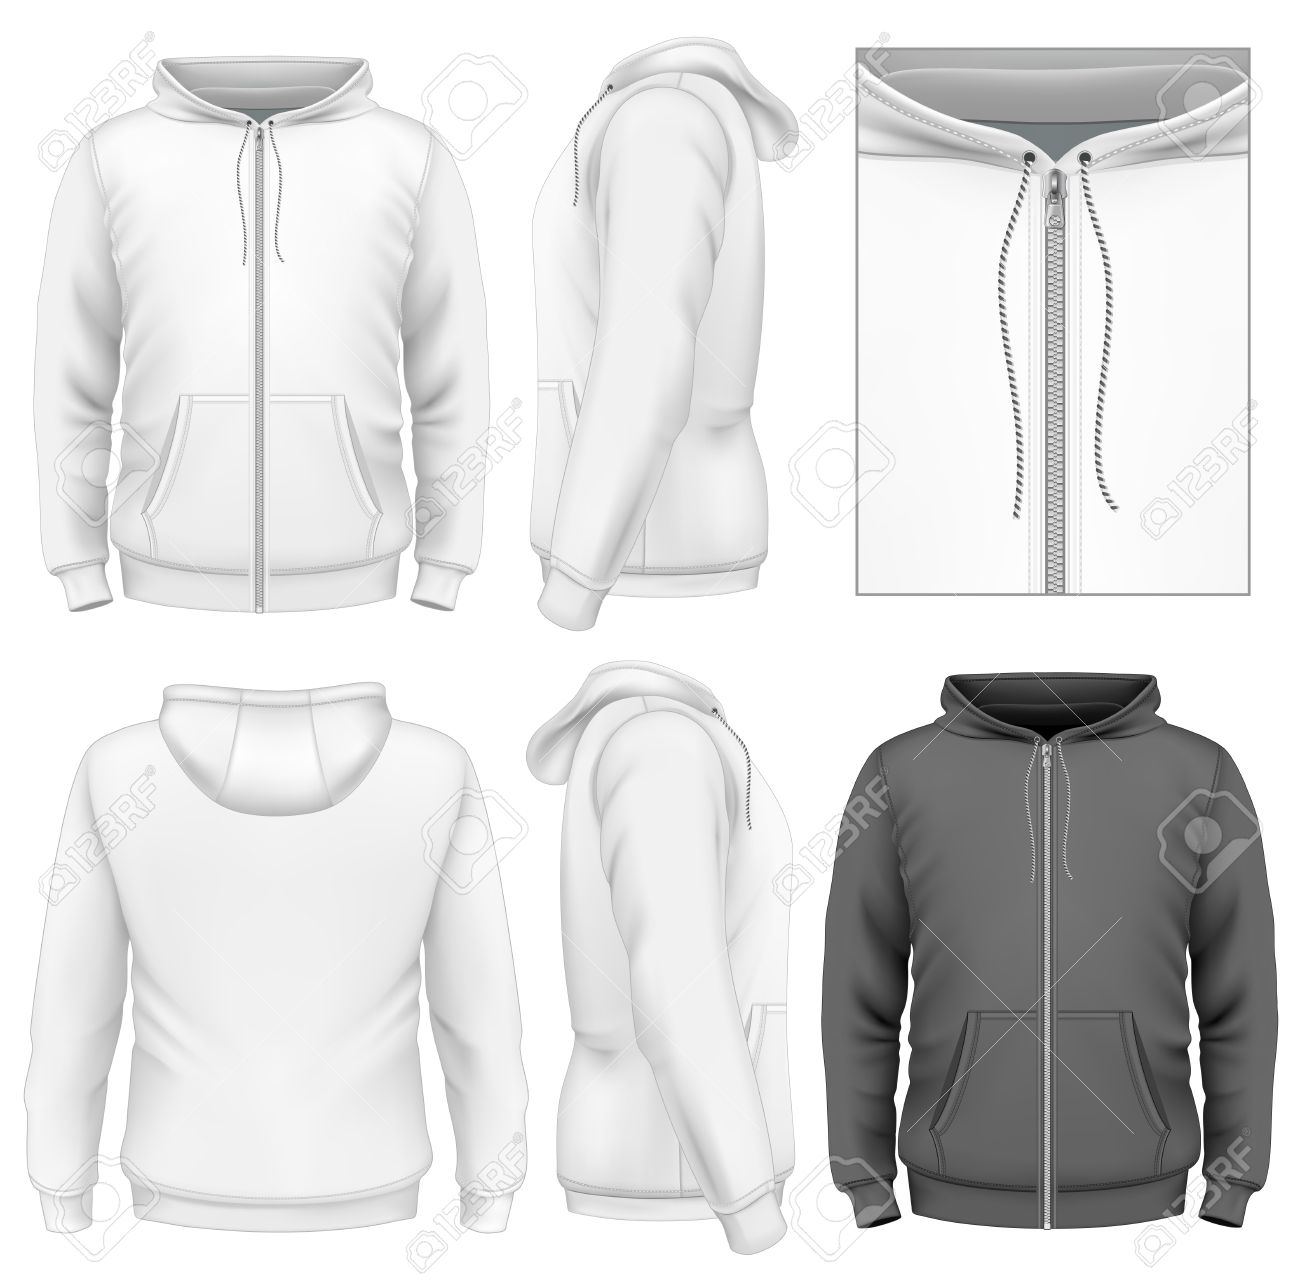 great hoodie template photos resume ideas namanasacom - Hoodie Design Ideas